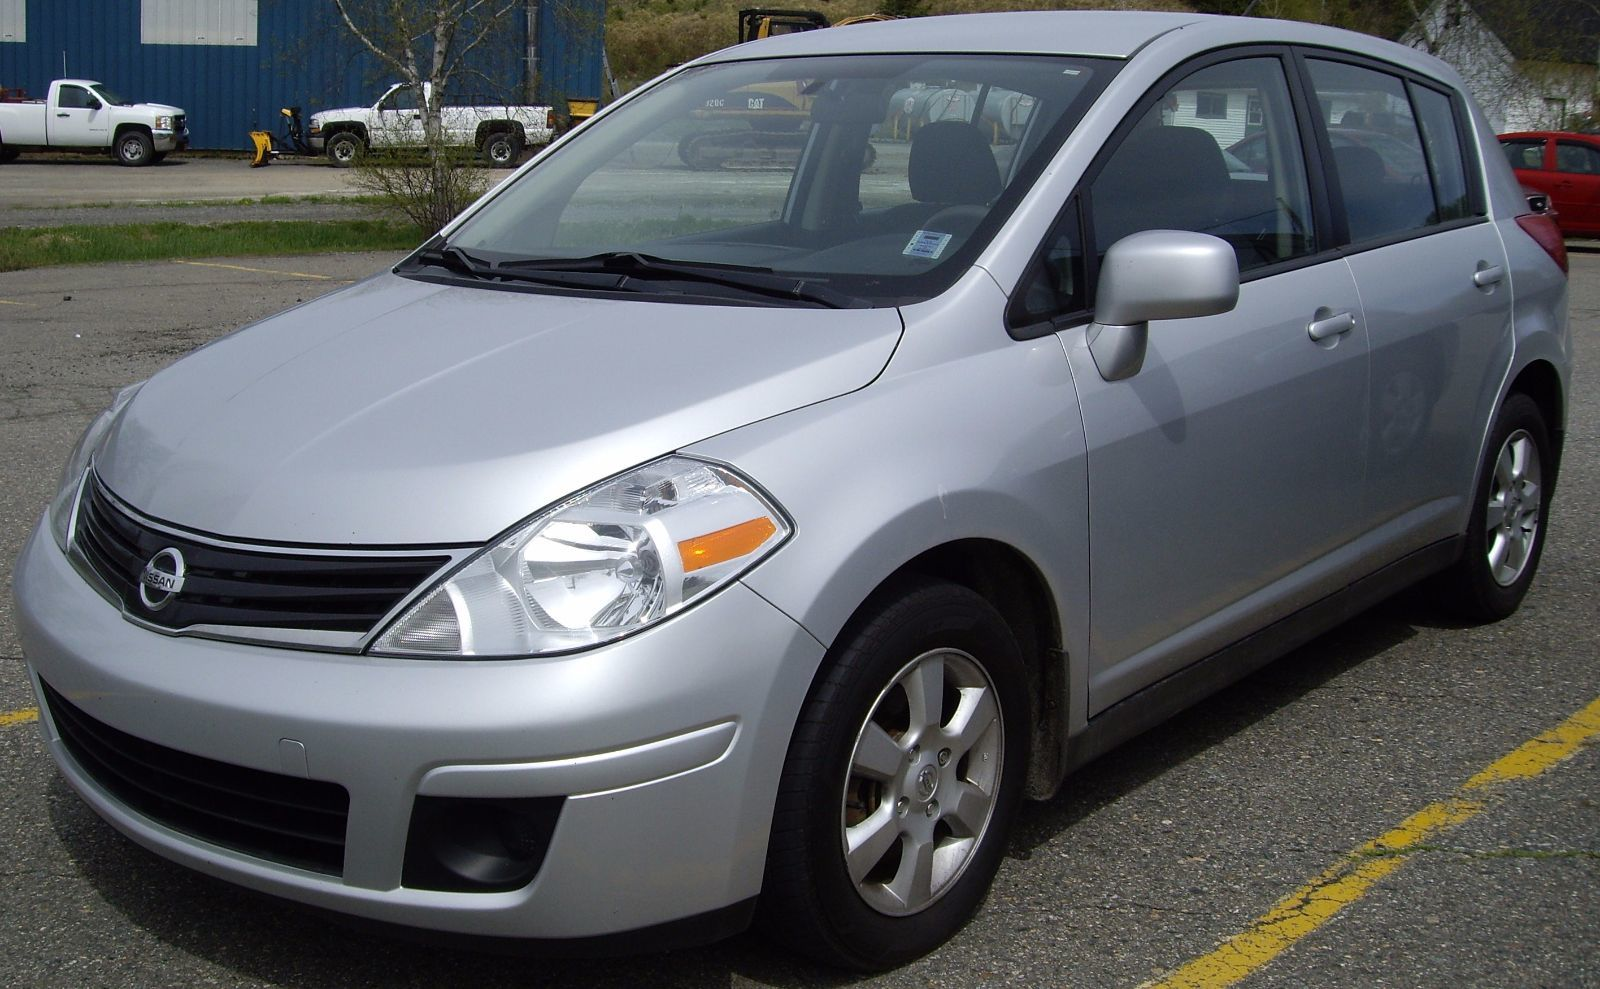 used 2010 nissan versa in new germany used inventory lake view auto in new germany nova scotia. Black Bedroom Furniture Sets. Home Design Ideas